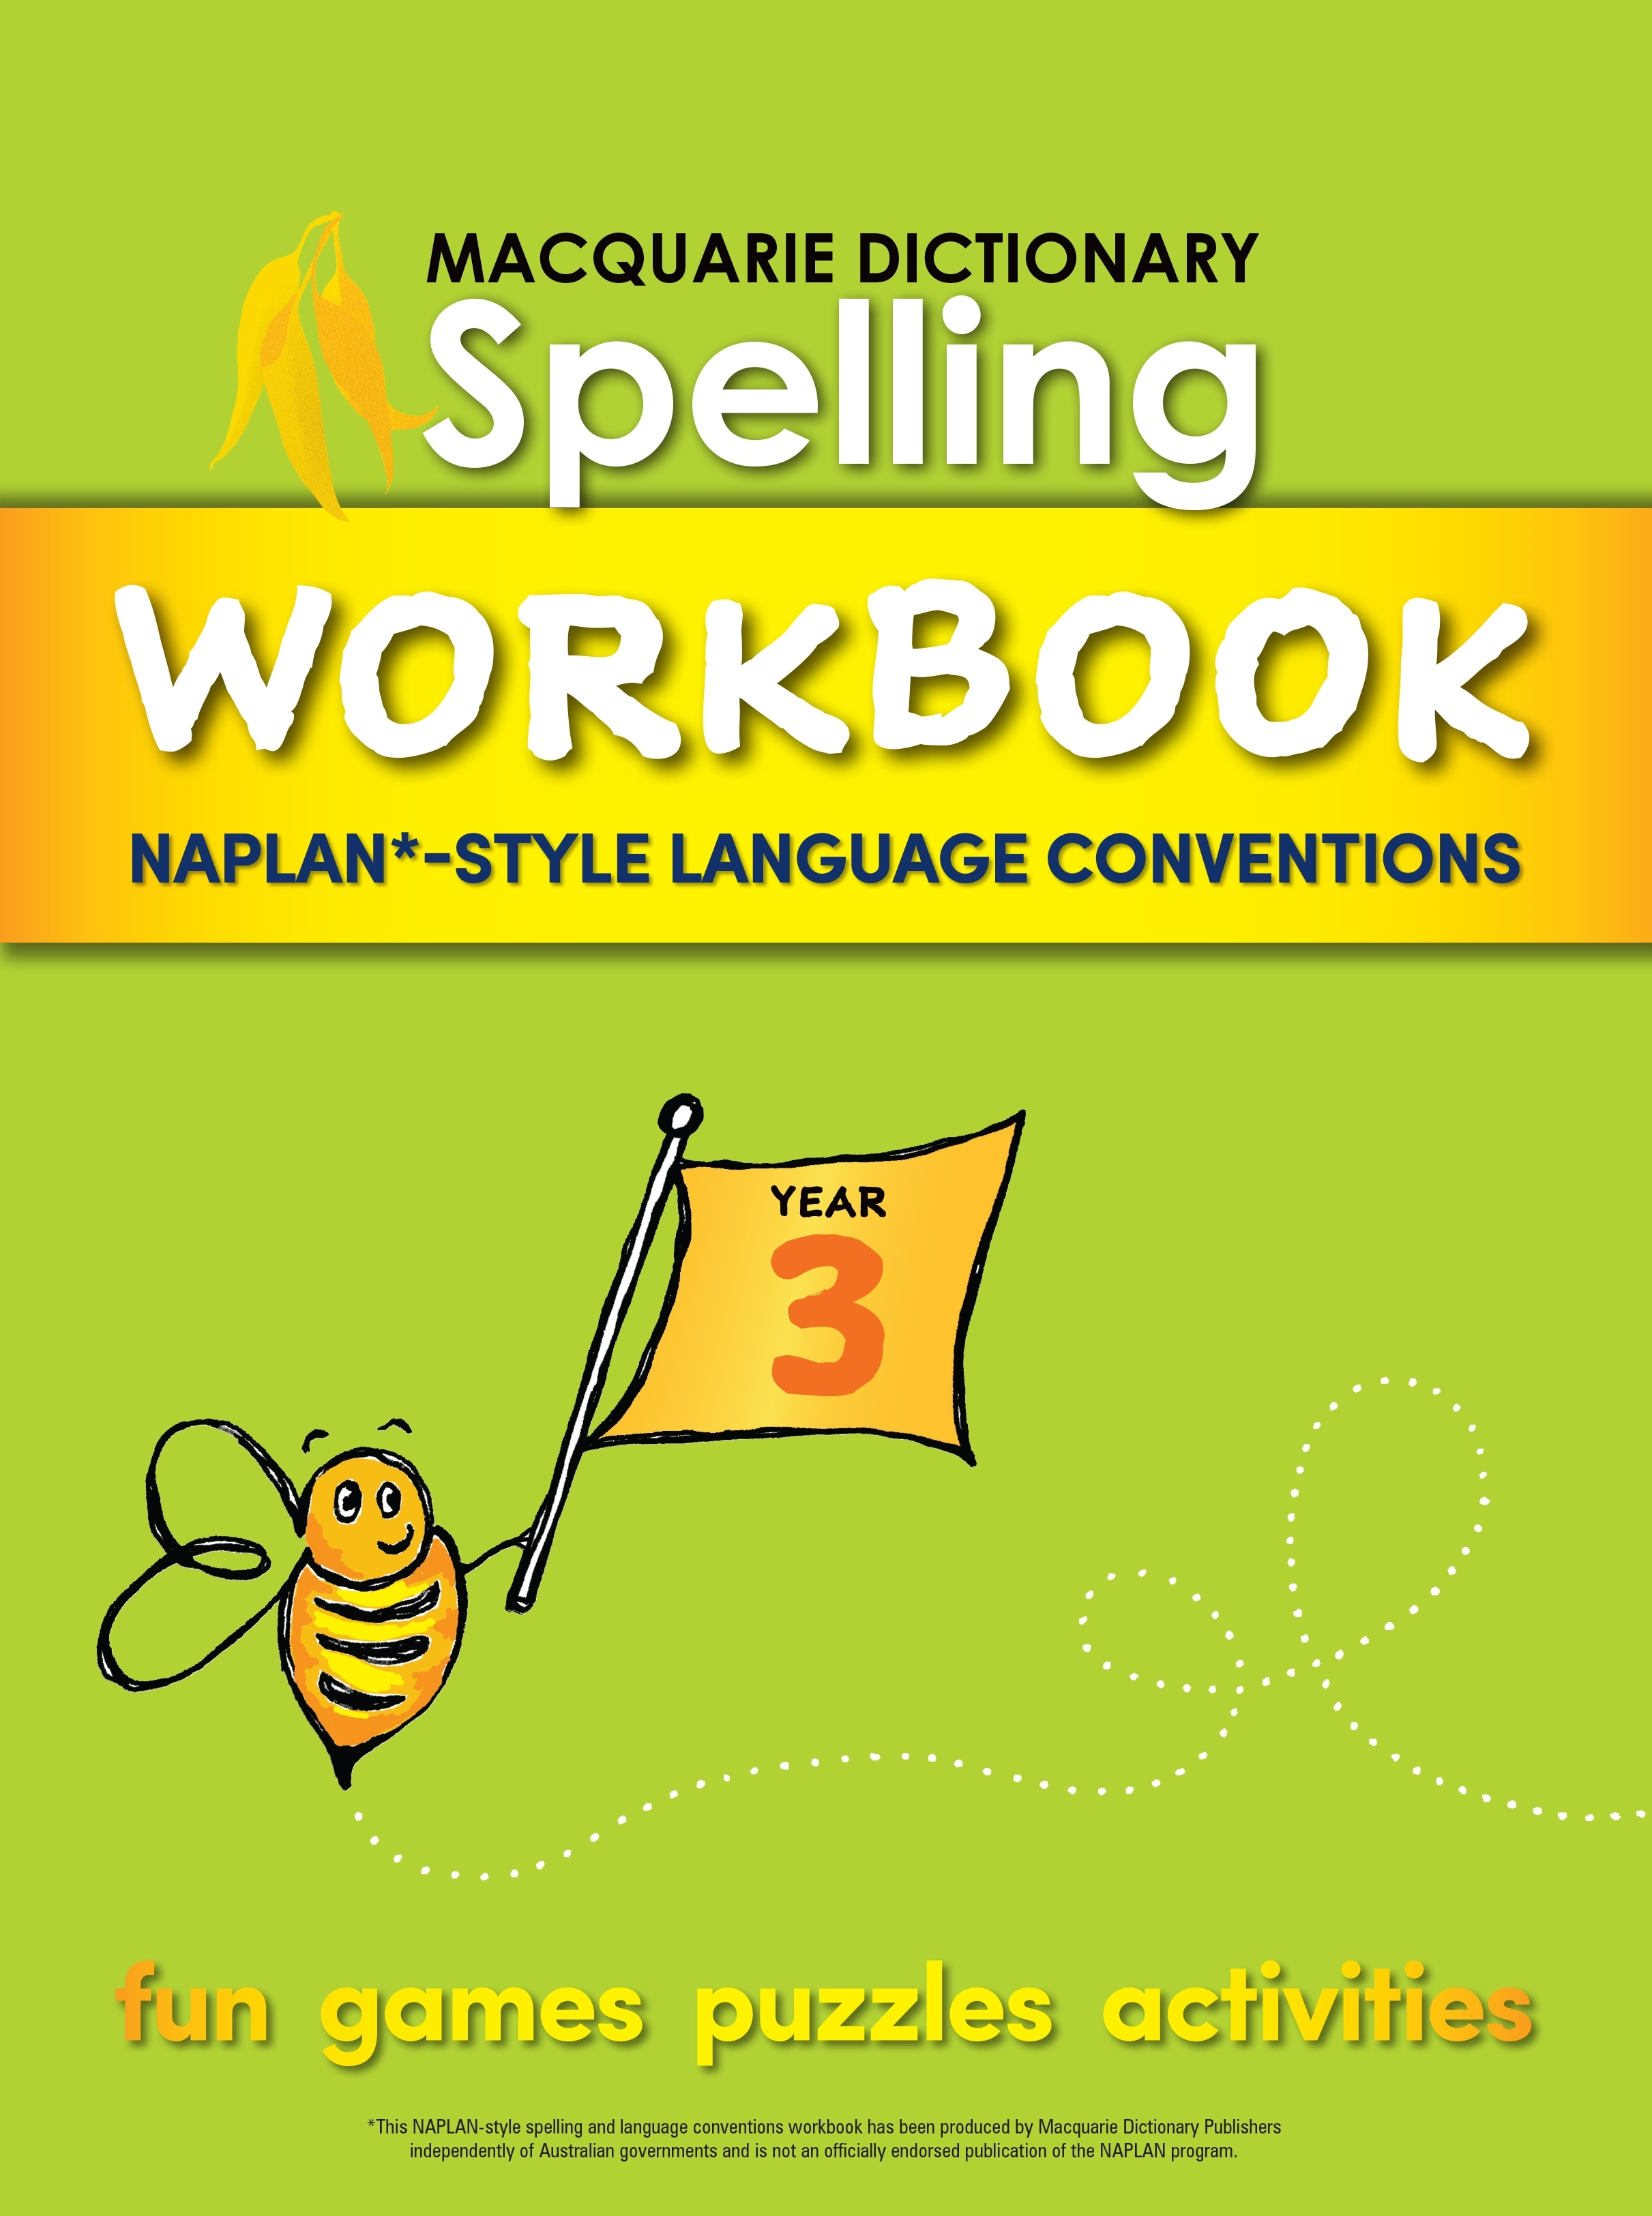 Macquarie Dictionary Spelling Workbook: Year 3: With Naplan*-Style Language Conventions